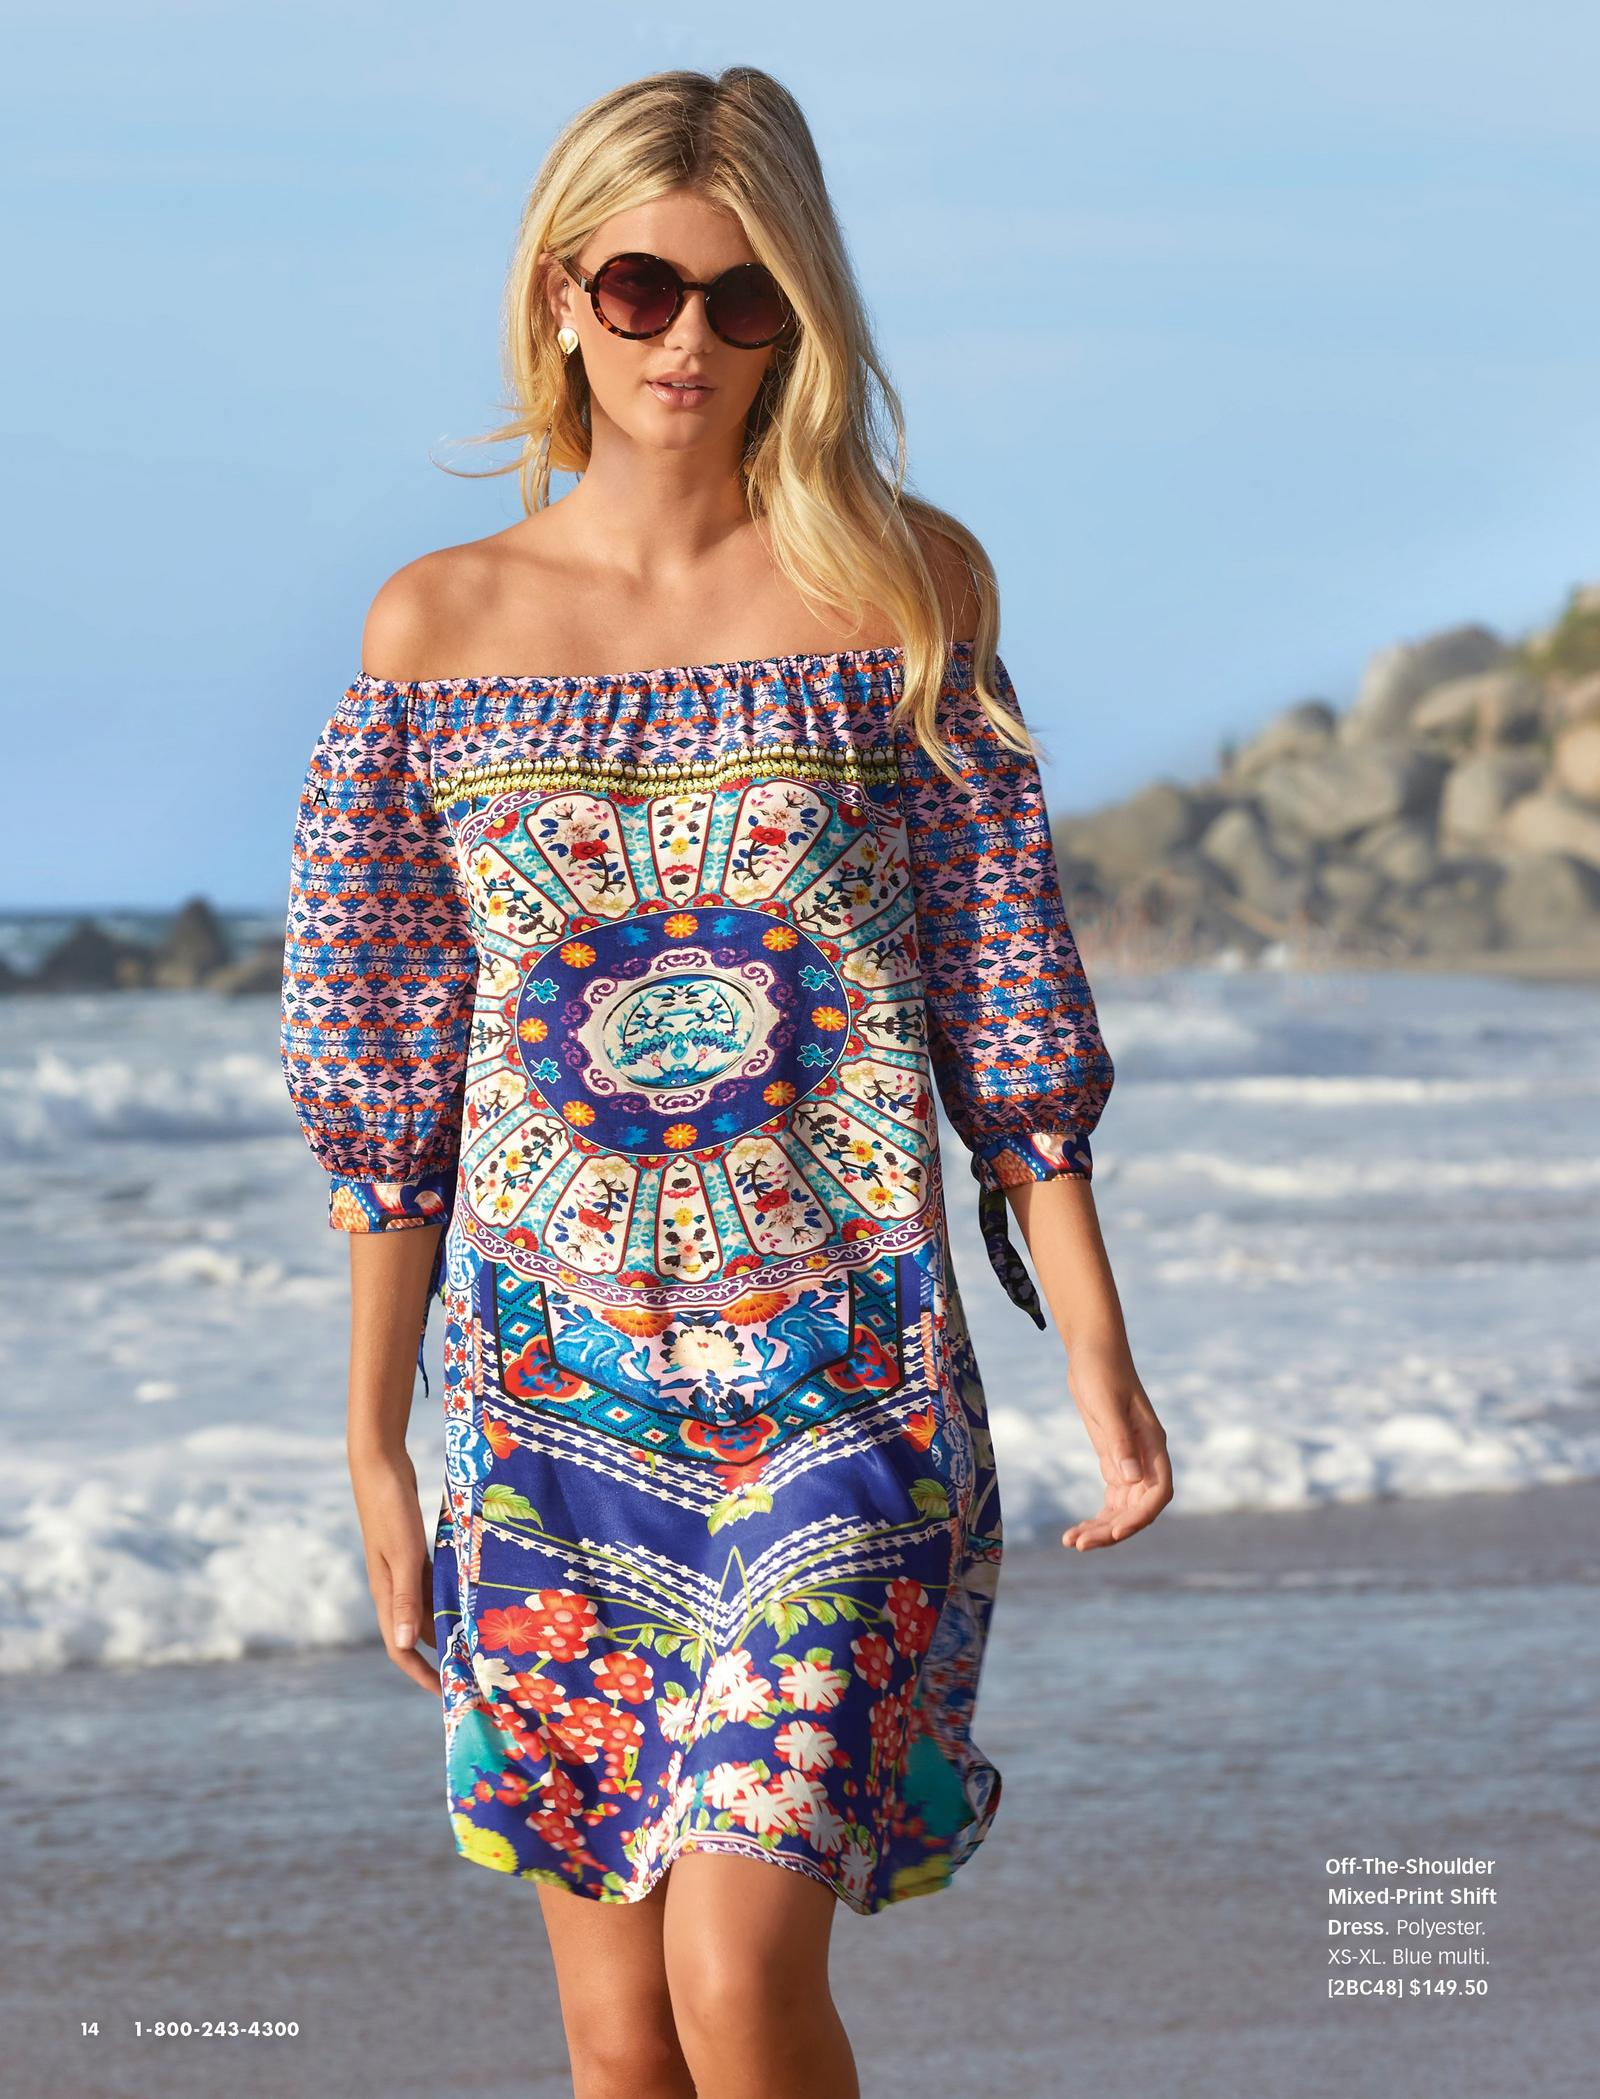 model wearing an off-the-shoulder mixed-print shift dress and sunglasses.